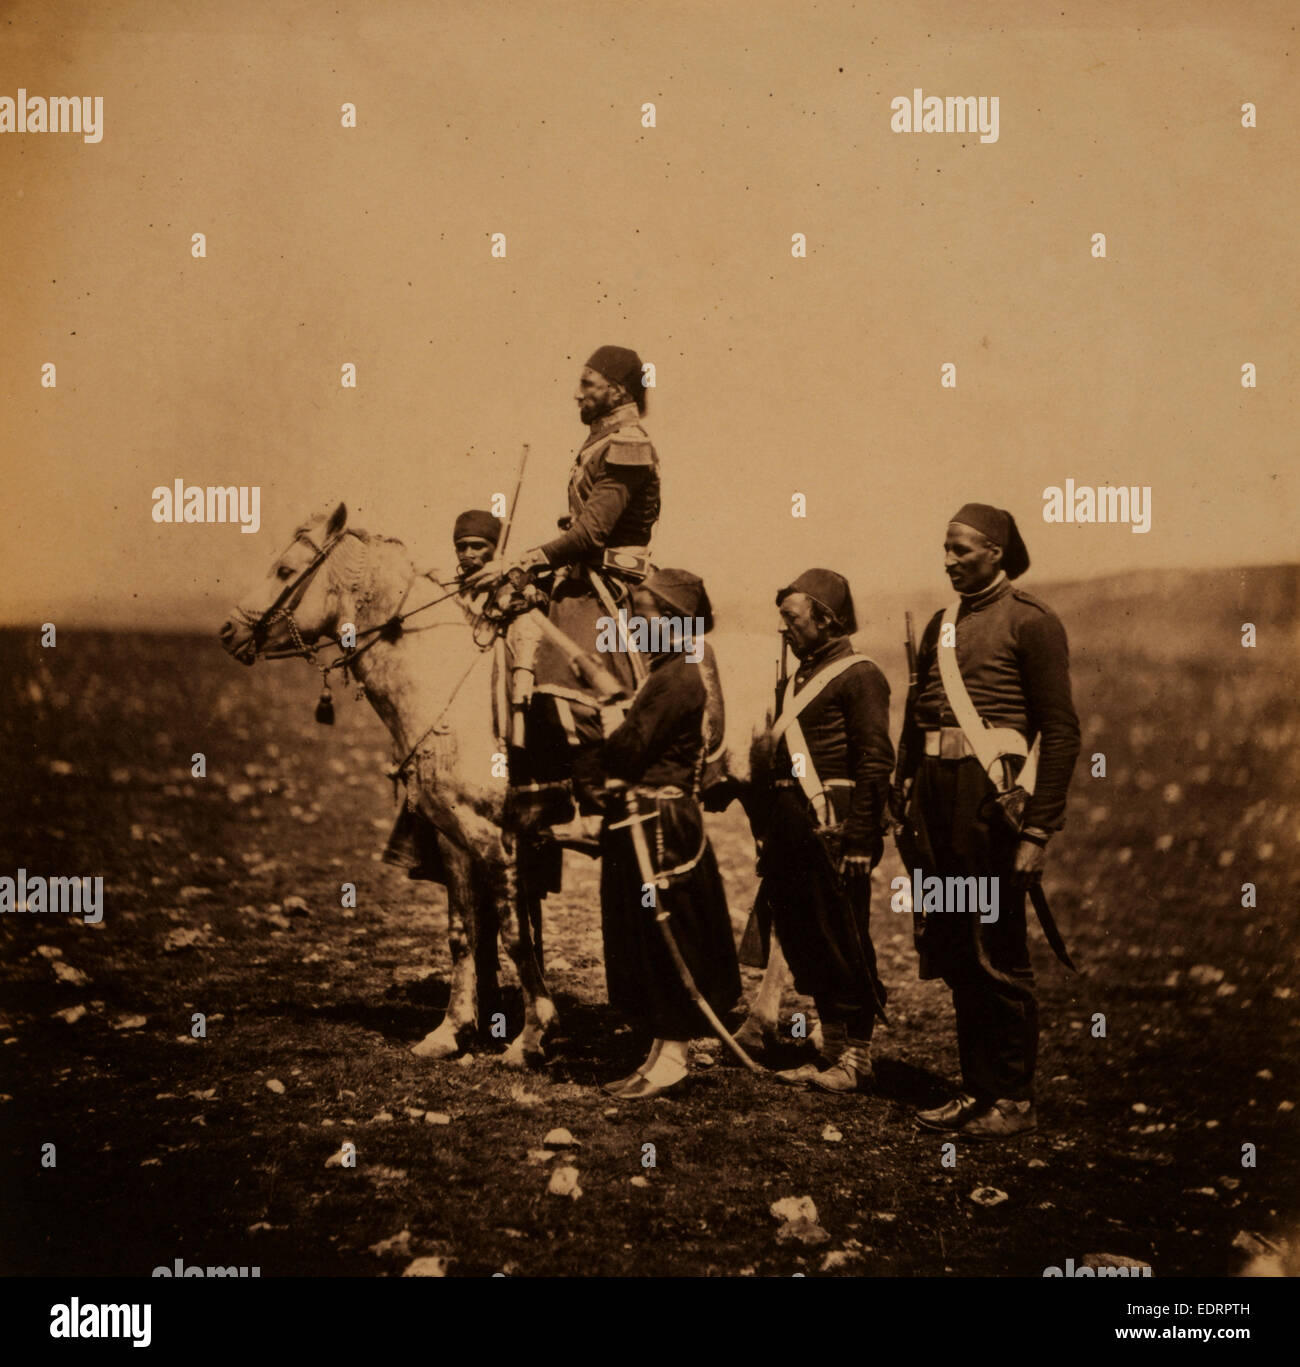 Ismail Pacha on horseback, with Turkish officers, Crimean War, 1853-1856, Roger Fenton historic war campaign photo - Stock Image